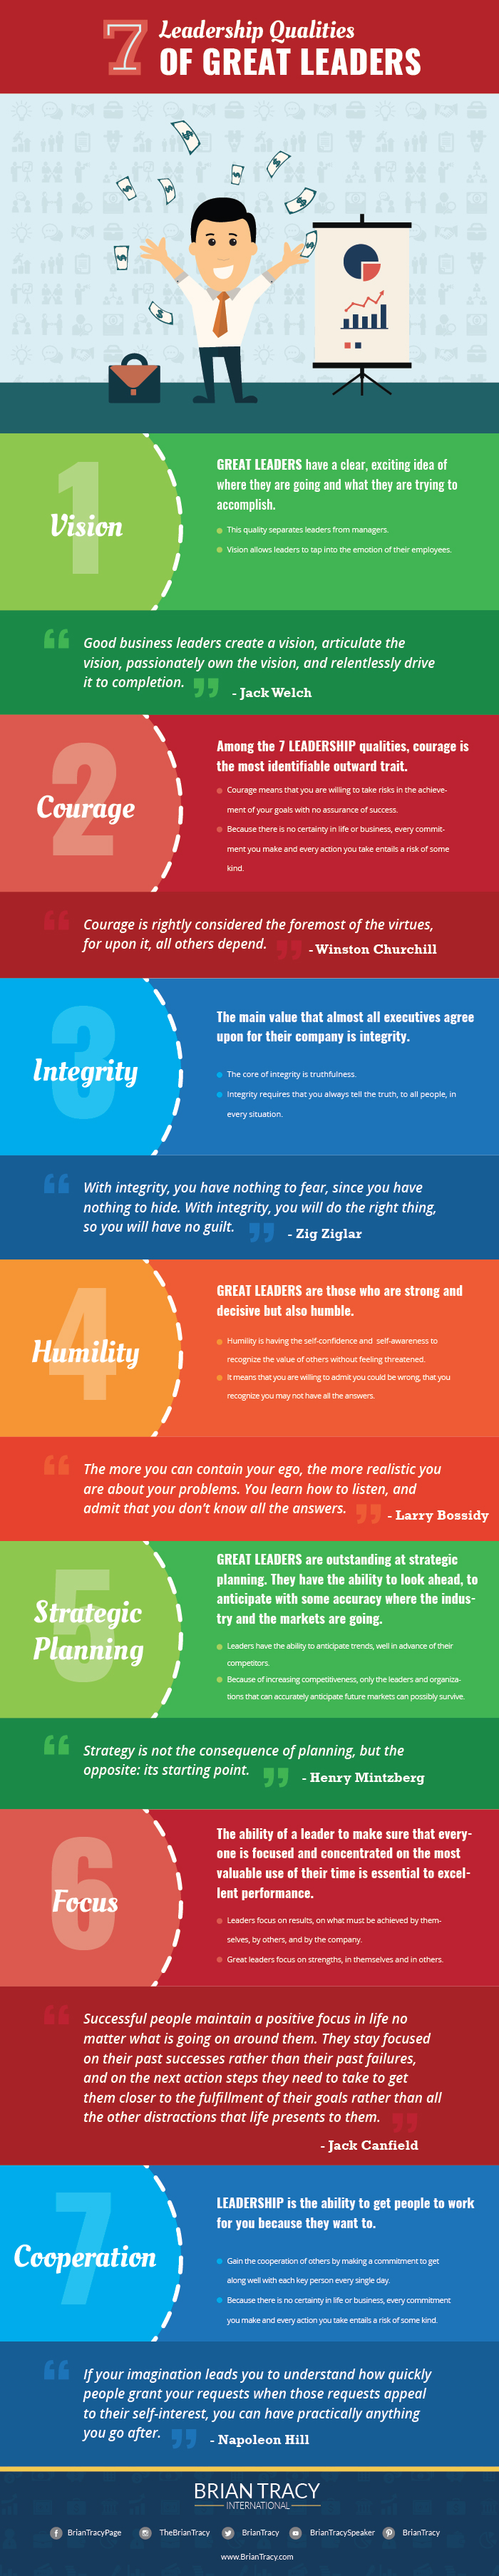 characteristics of a good leader essay leadership definition essay  the best leadership qualities infographic brian tracy see the full size infographic here